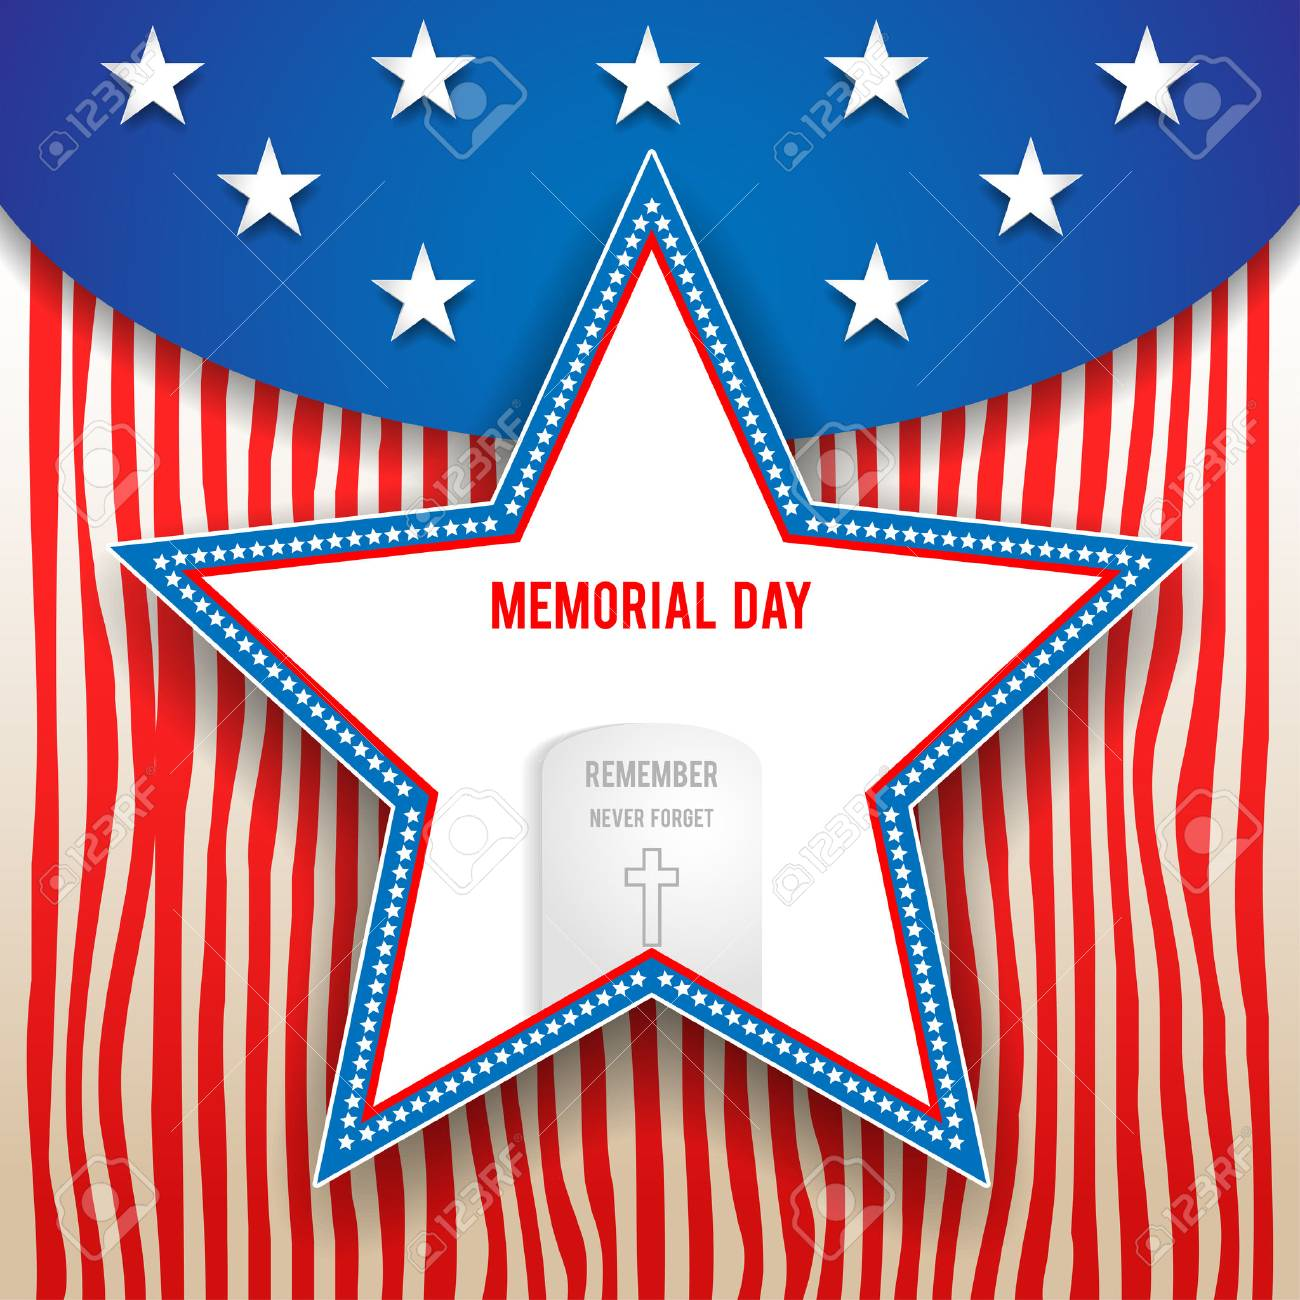 Memorial day design on striped background. Holiday patriotic card for Independence day, Memorial day, Veterans day, Presidents day and so on. - 41426217